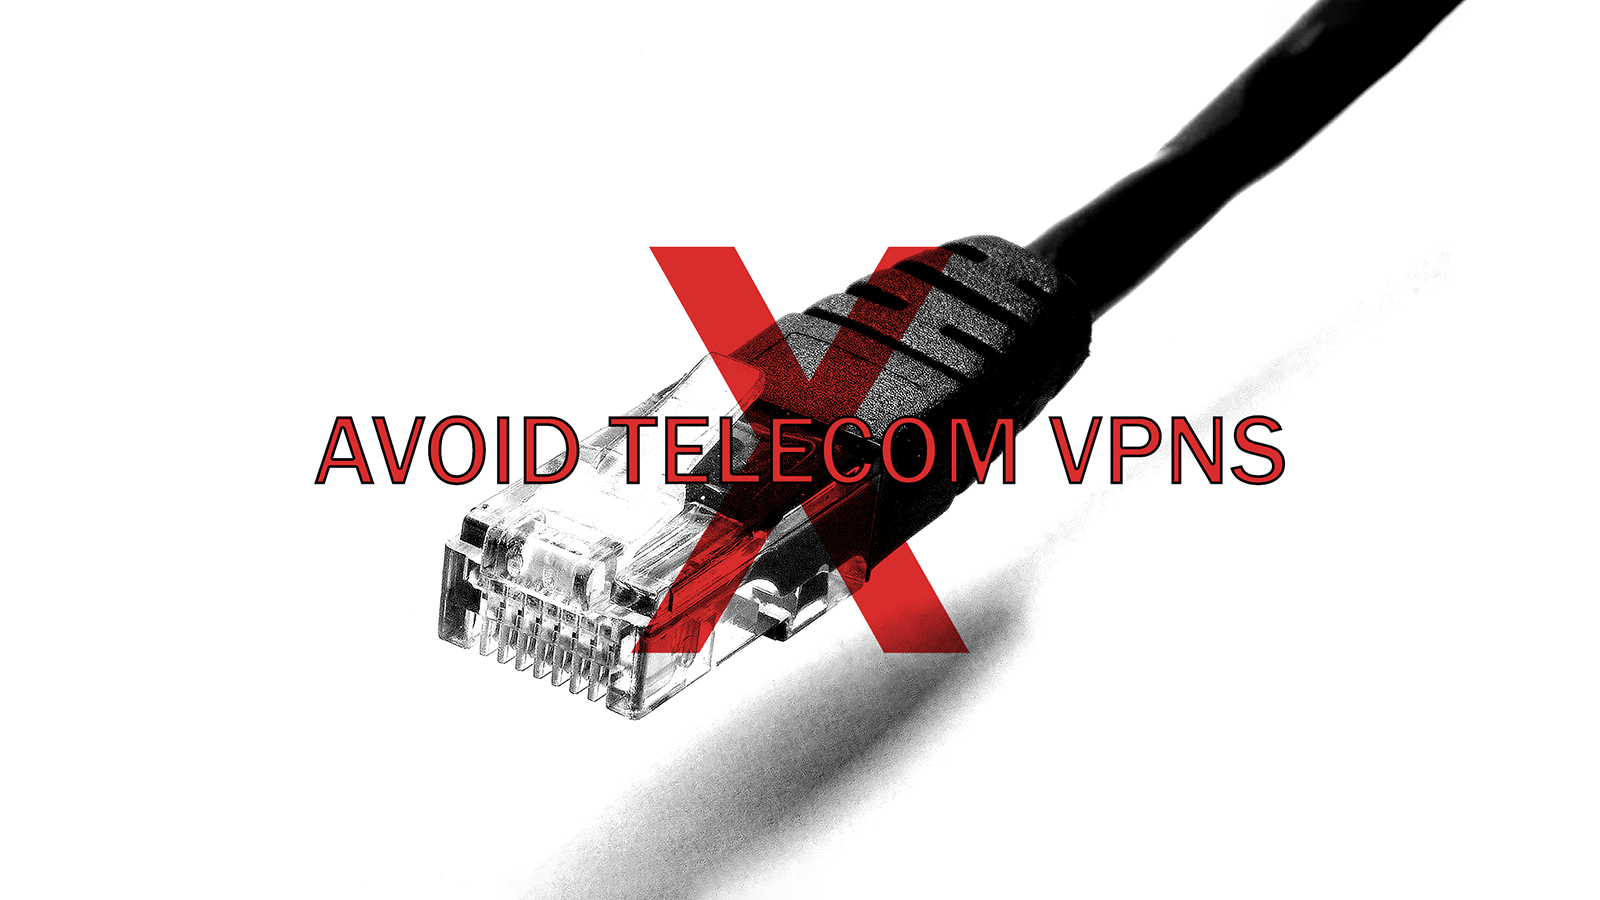 Big Telecoms with Questionable Motives are Starting VPN Services